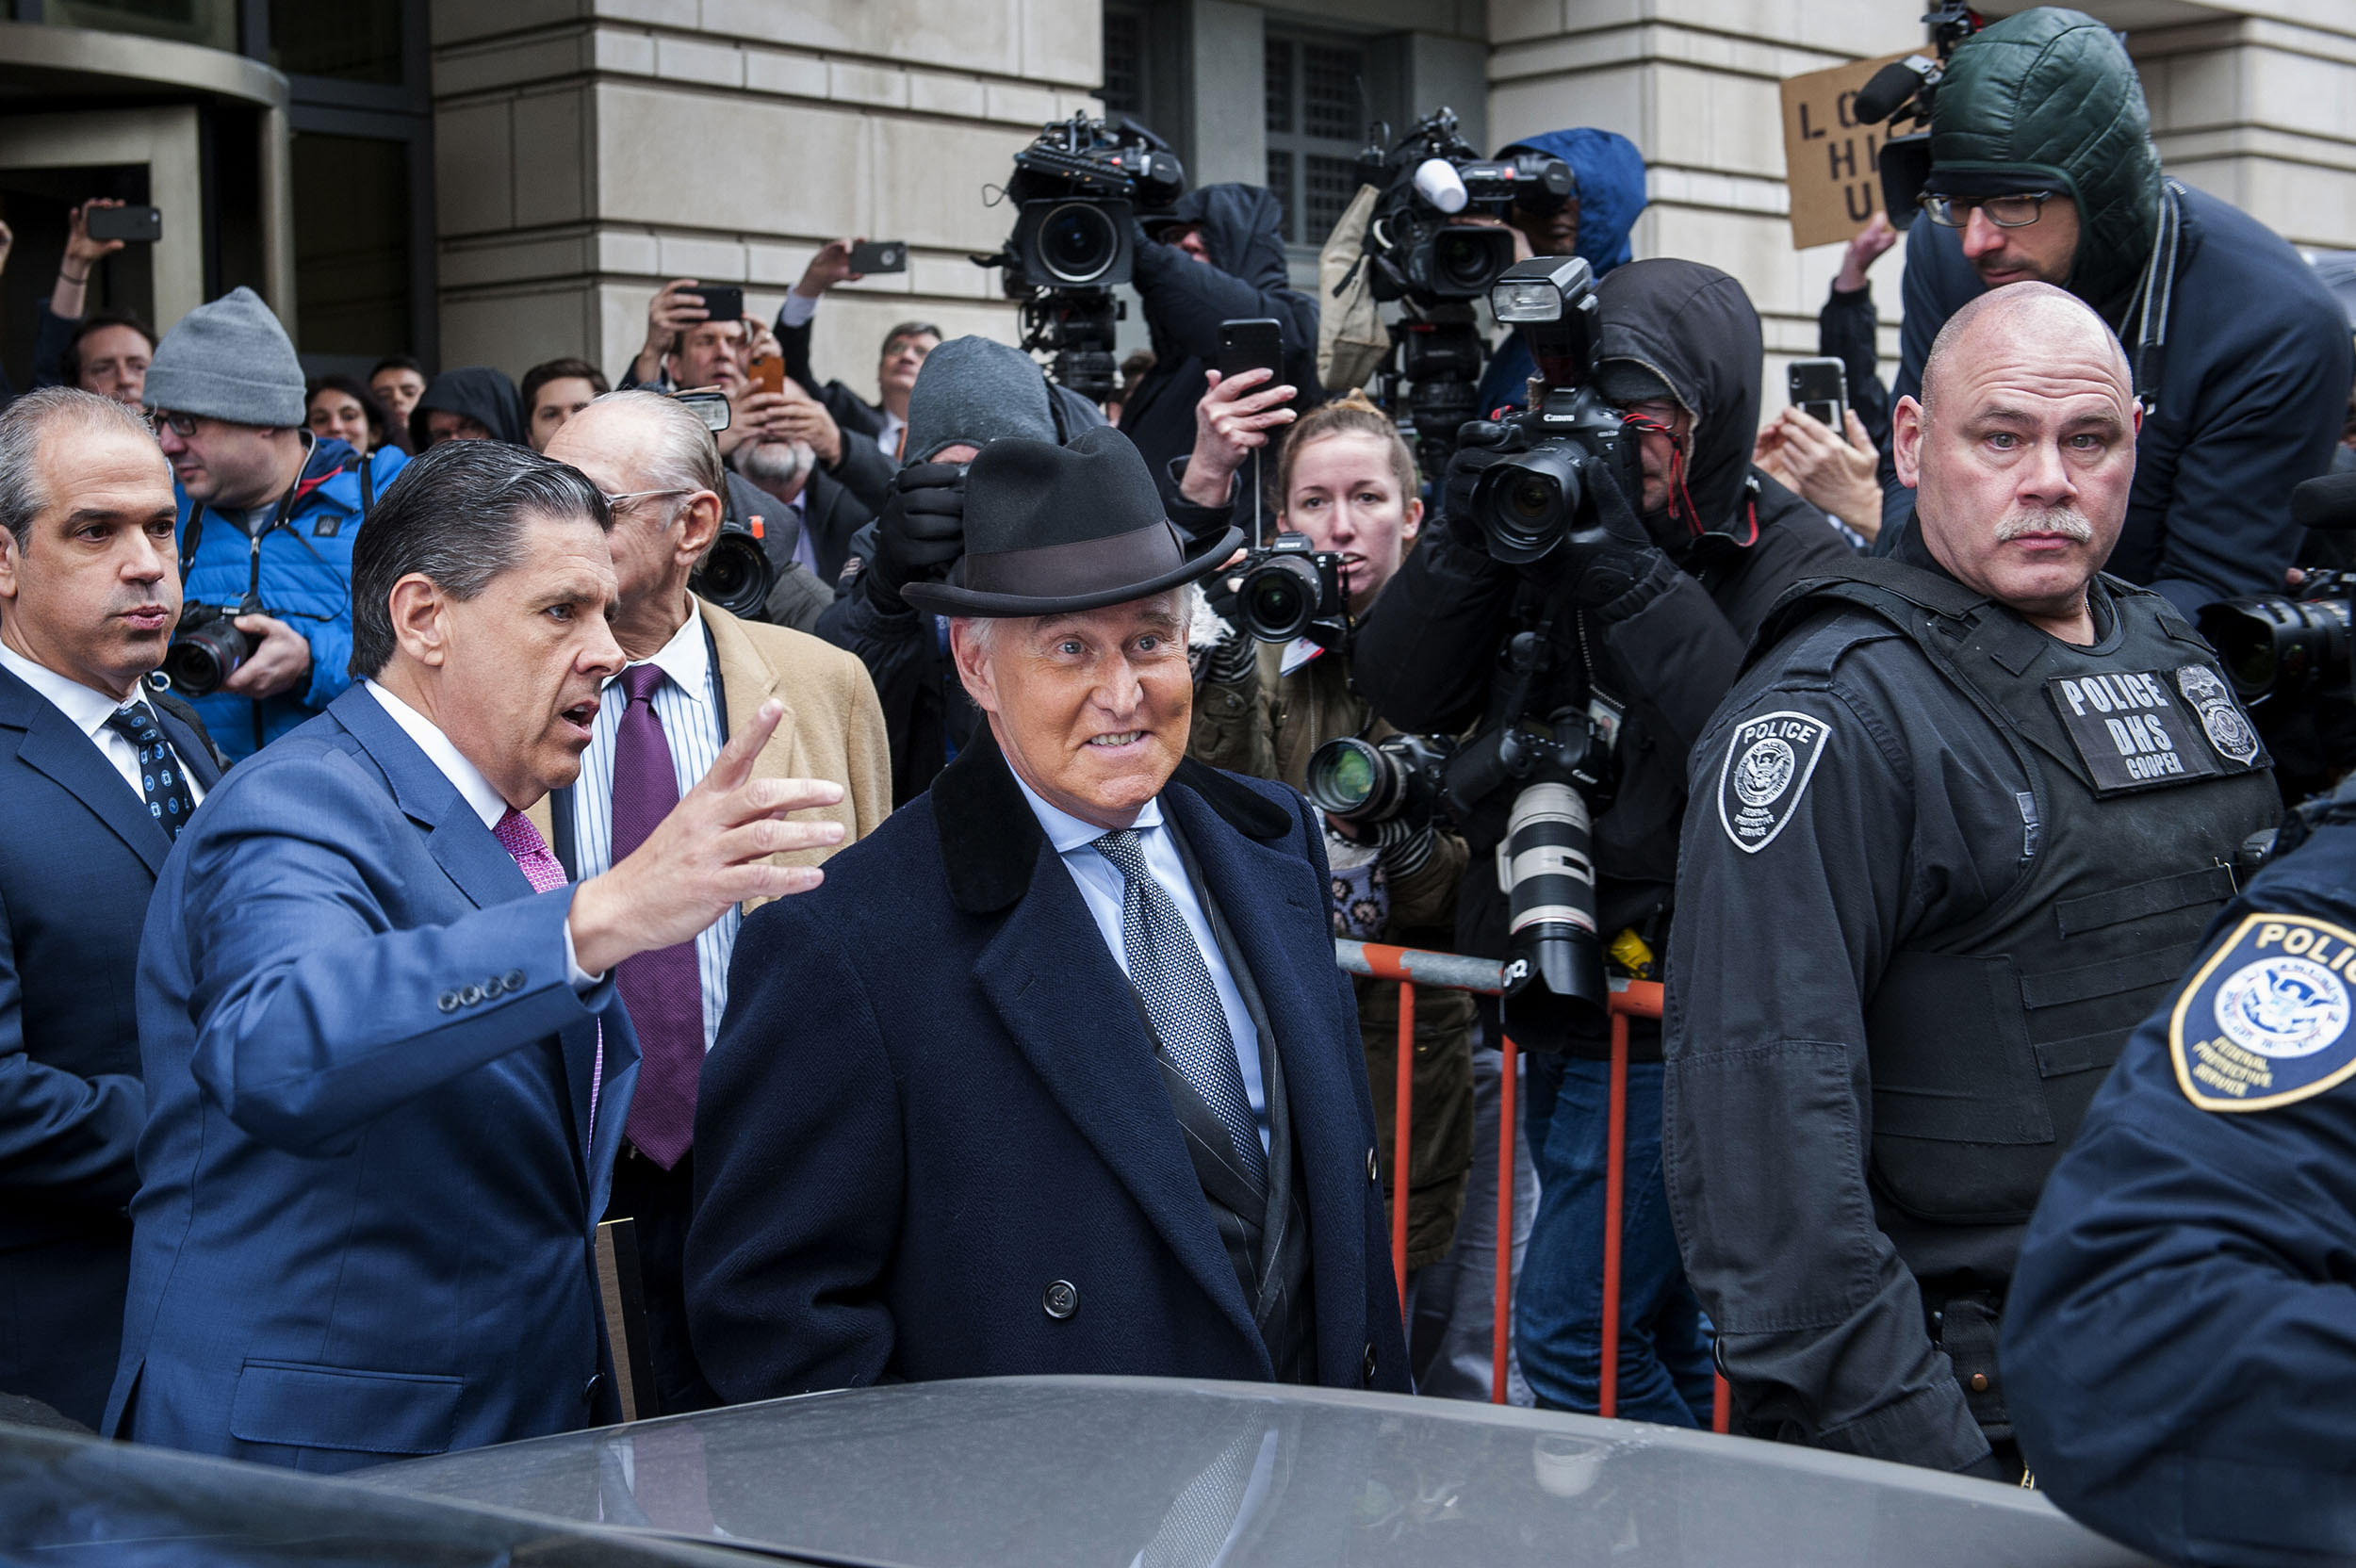 Roger Stone, a close friend of President Donald Trump, exits from federal court following his sentencing to 40 months in prison on February 20, in Washington, DC.